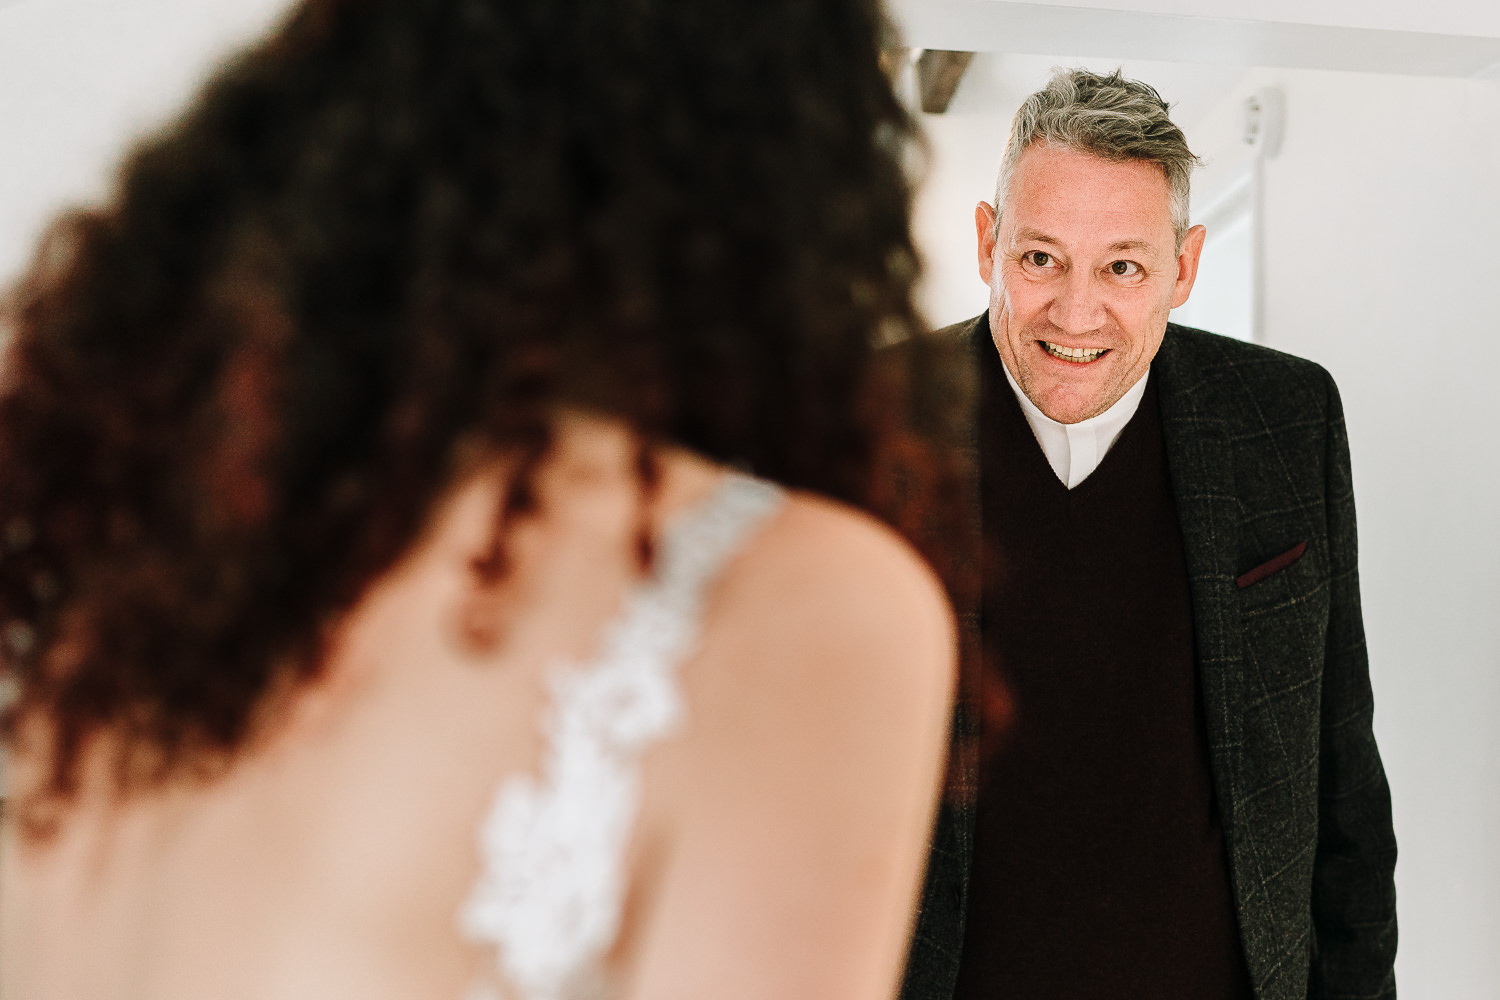 father of the bride walking into the room to see the bride